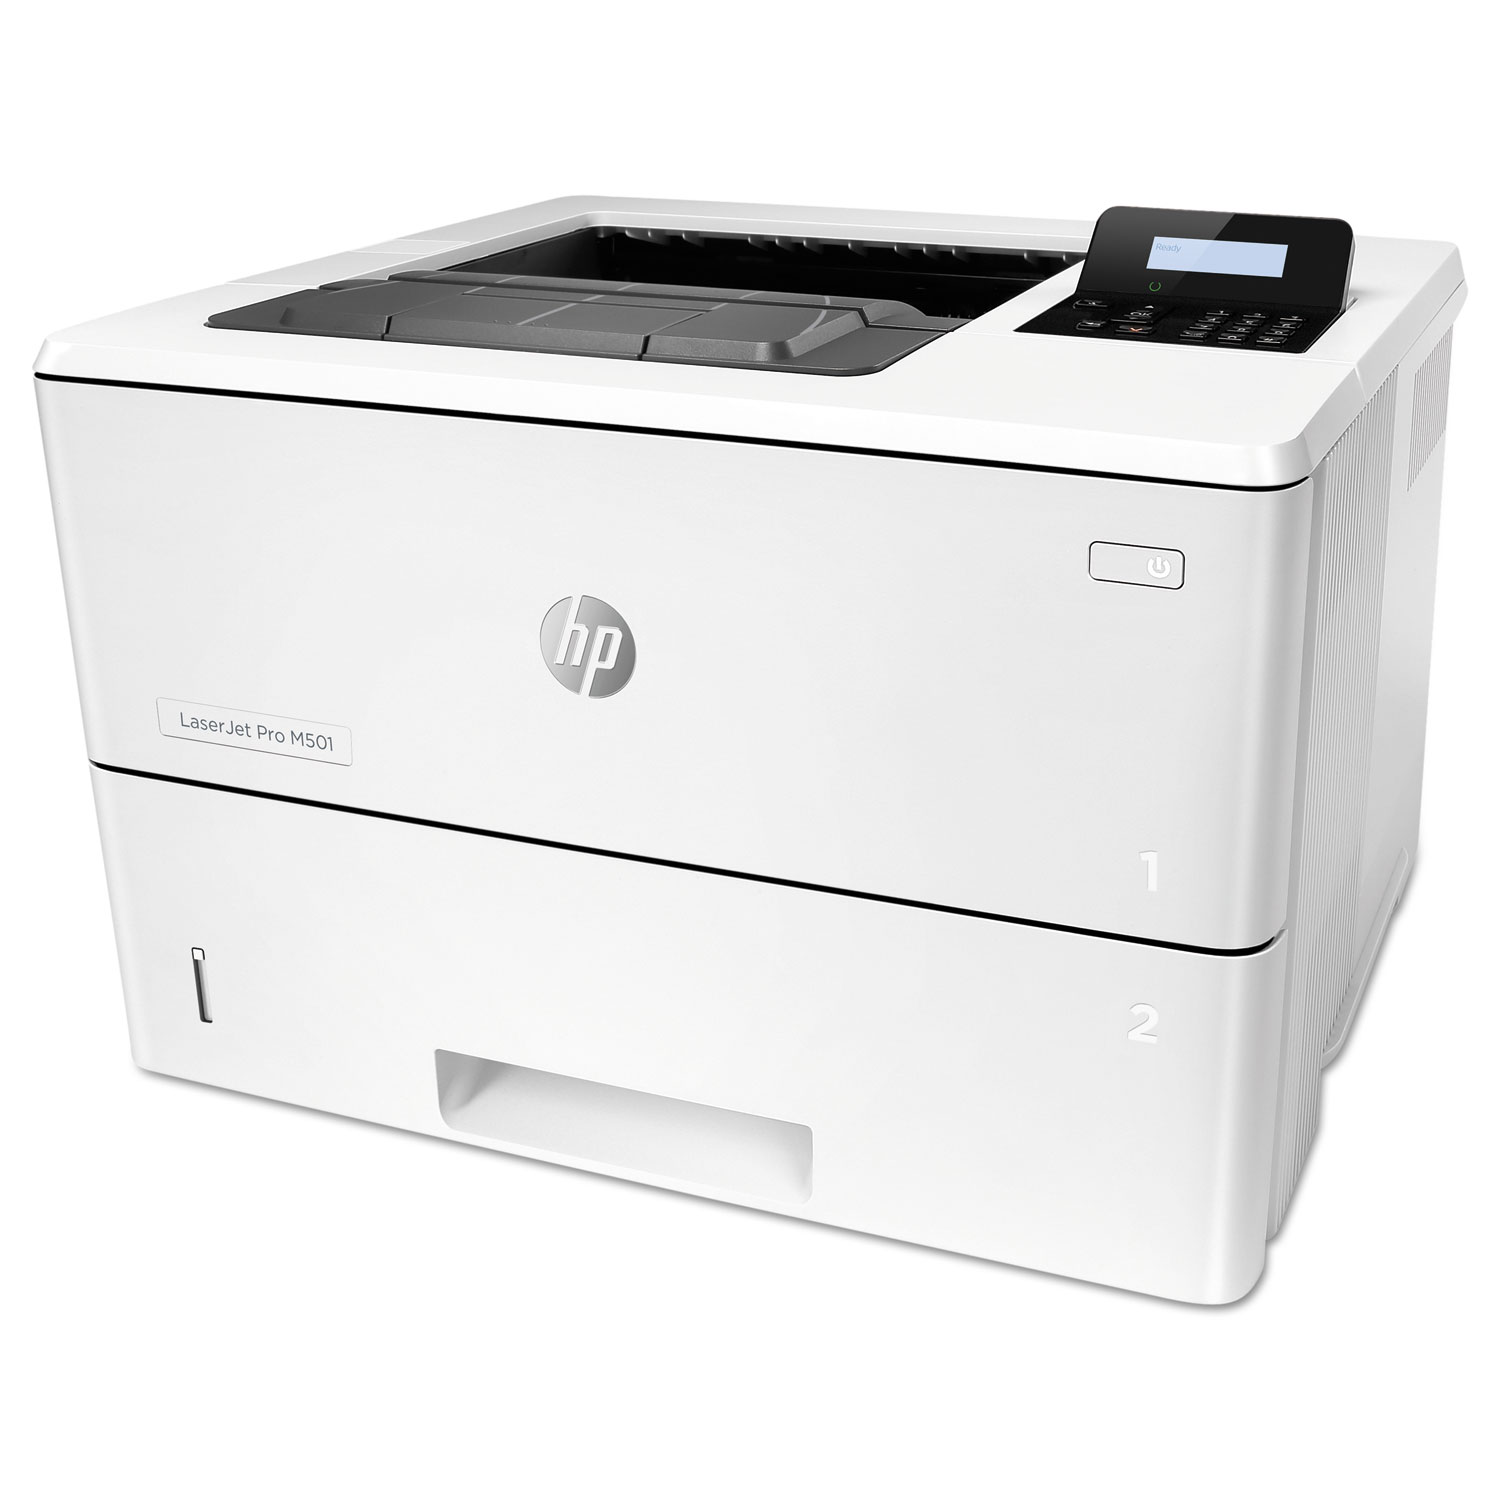 LaserJet Pro M501dn Wireless Laser Printer